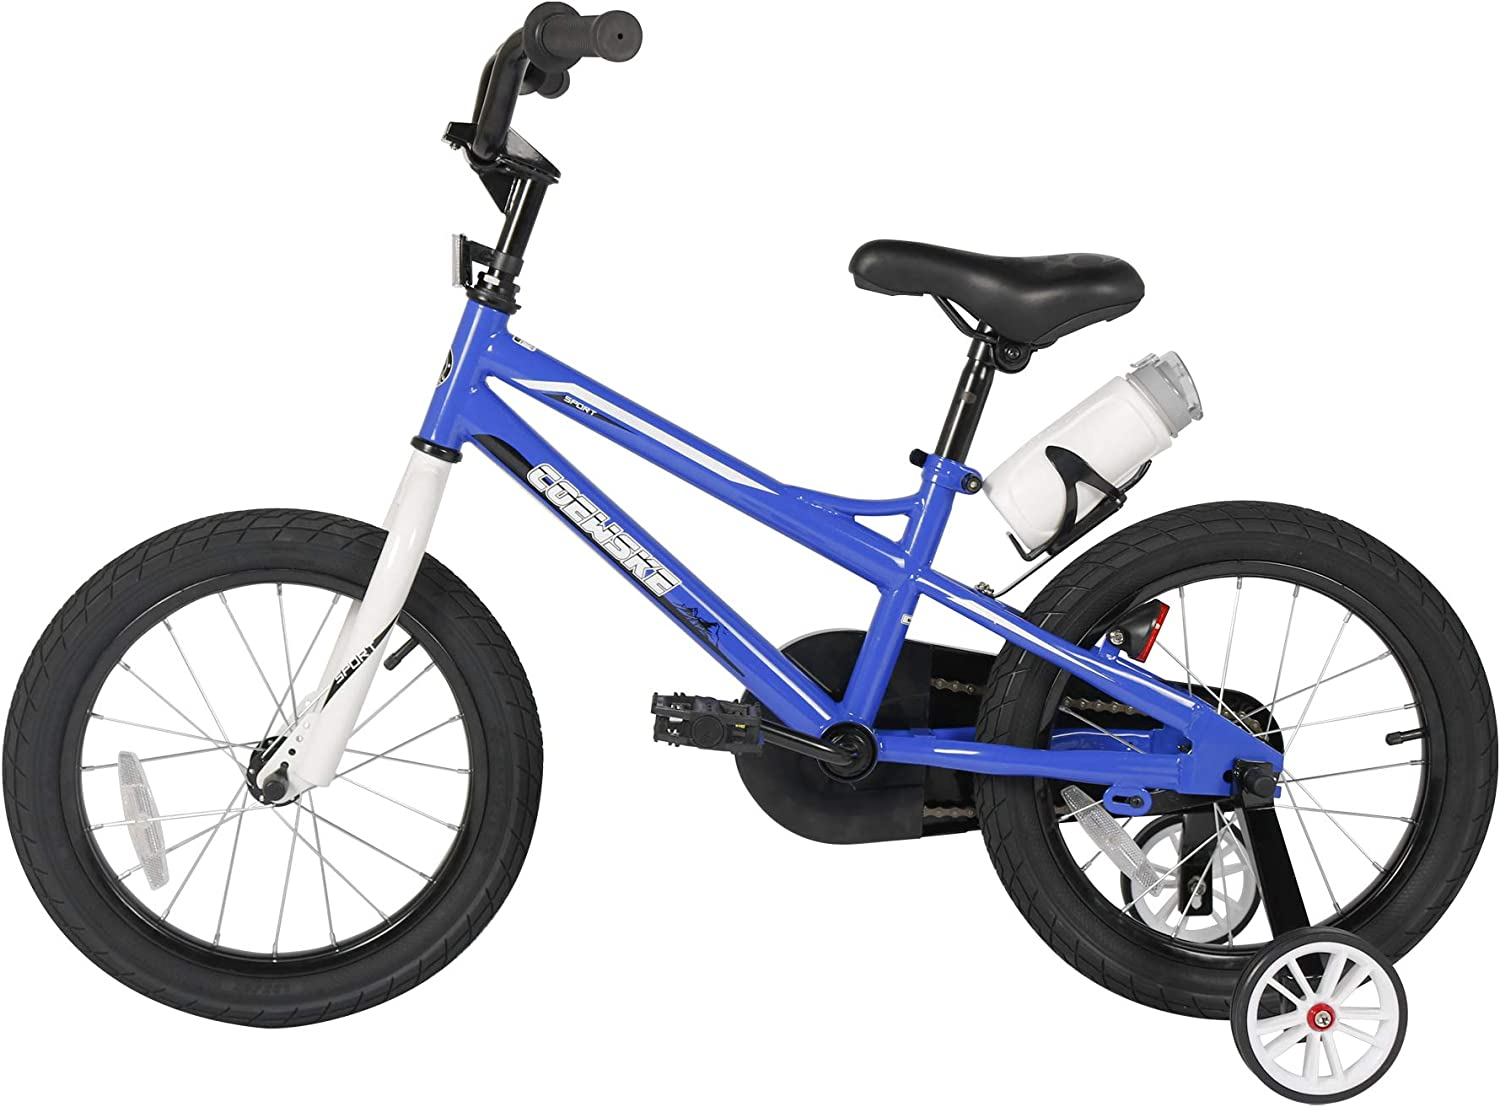 Sporty Kids Bike Stylish Boys and Girls Bikes Steel Frame 14-16 Inch with Training Wheels Water Bottle for Toddlers and Children Age 3-7 Height 35-50